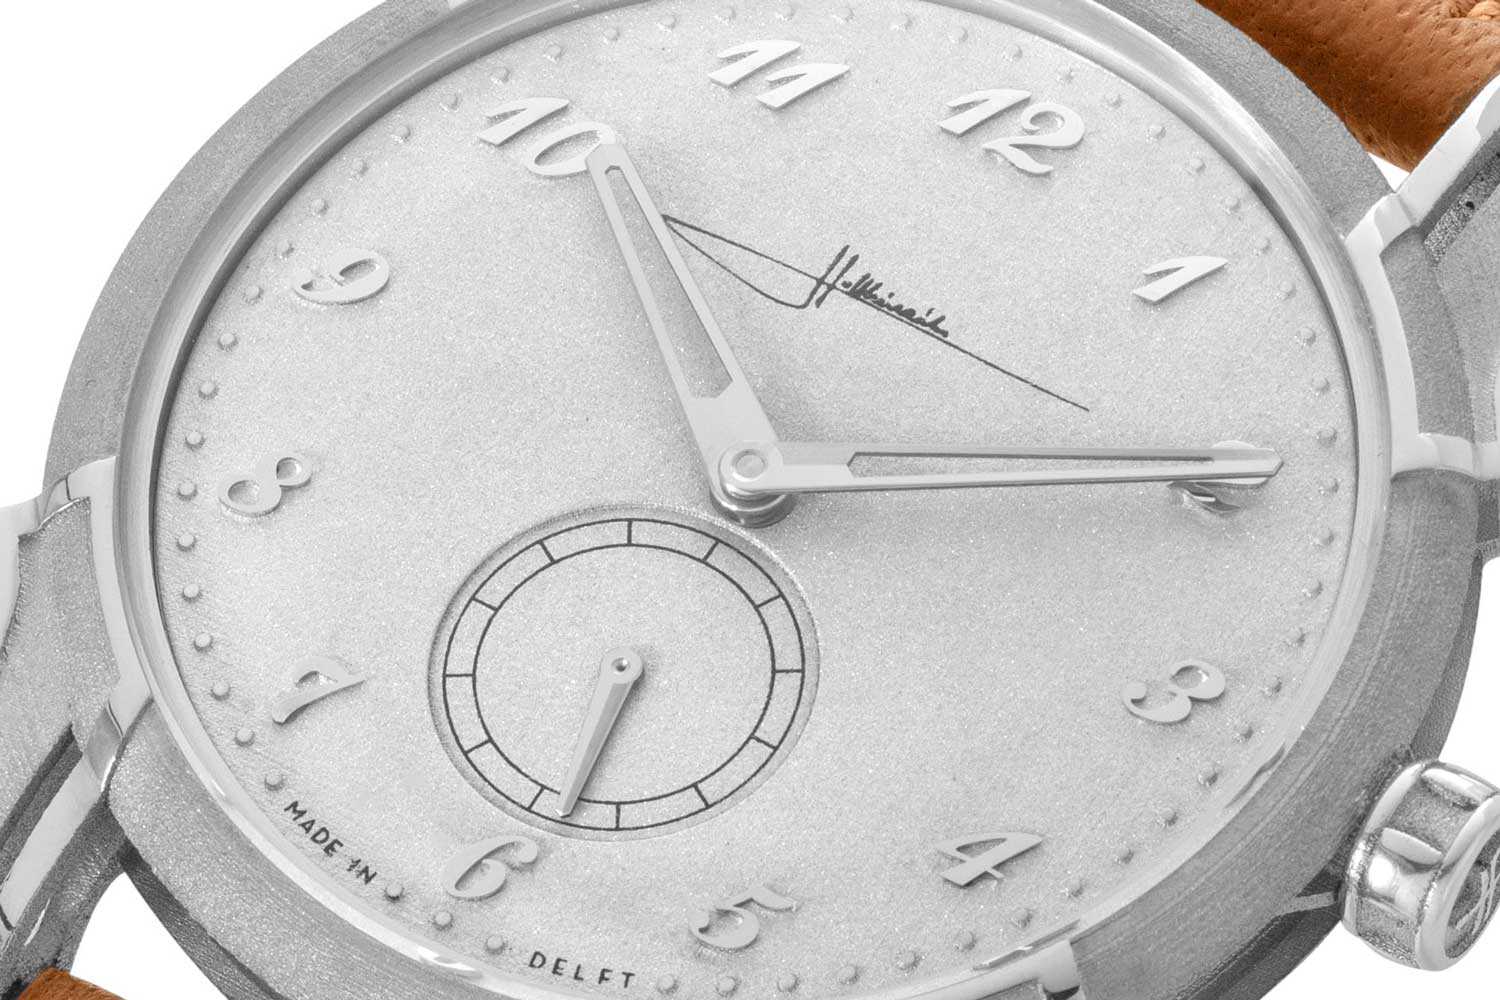 A closer look at the sandblasted-type finish dial contrasted by high-polished angular applied Breguet numerals on the Holthinrichs Brutal Elegance Ornament for Revolution (©Revolution)